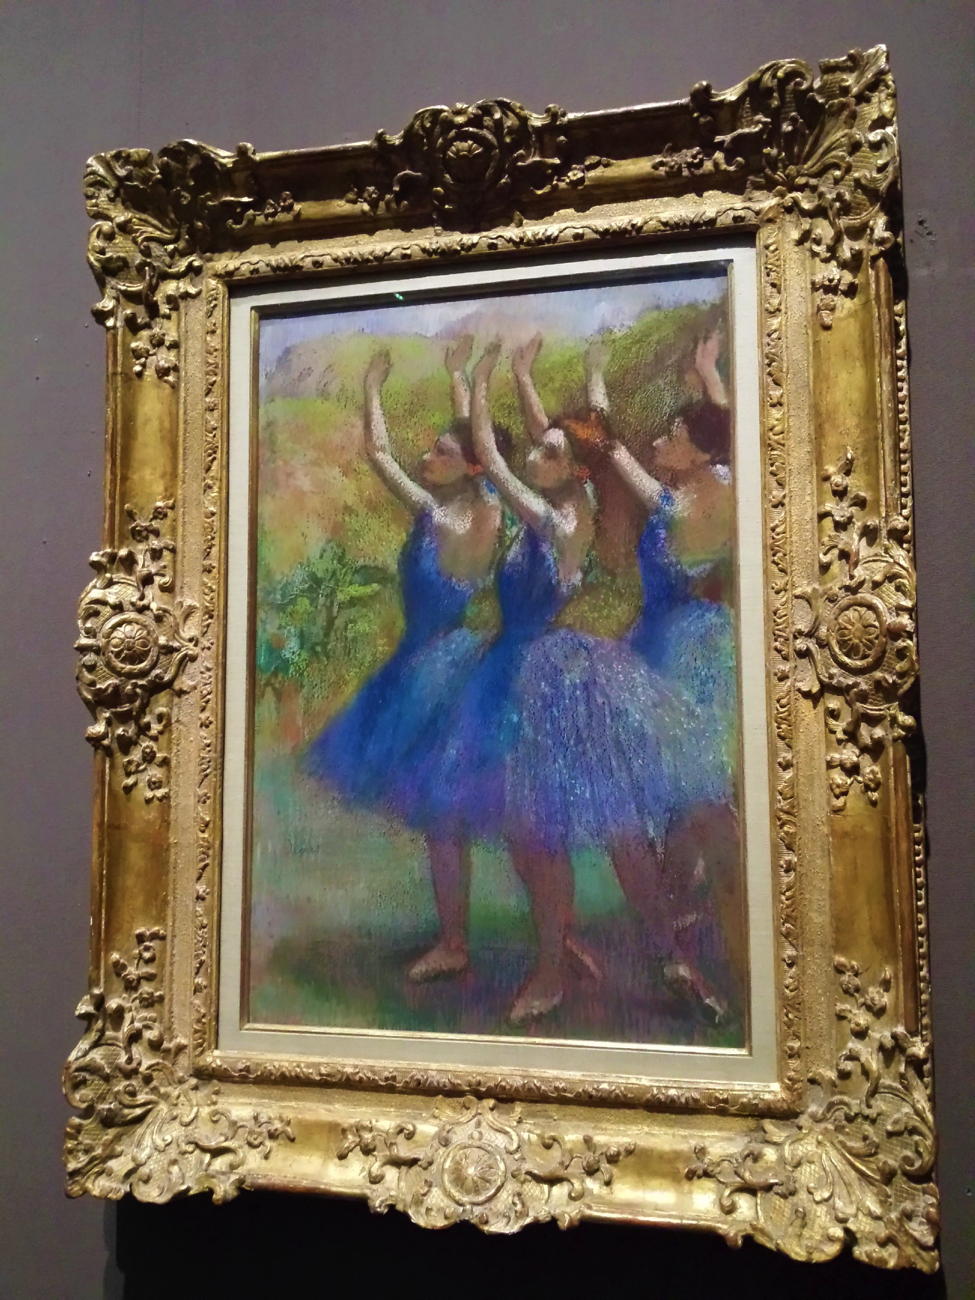 """""""Three Dancers in Violet Tutus"""". Photo taken by me in an art gallery this summer during the English Department's Study Abroad to London."""